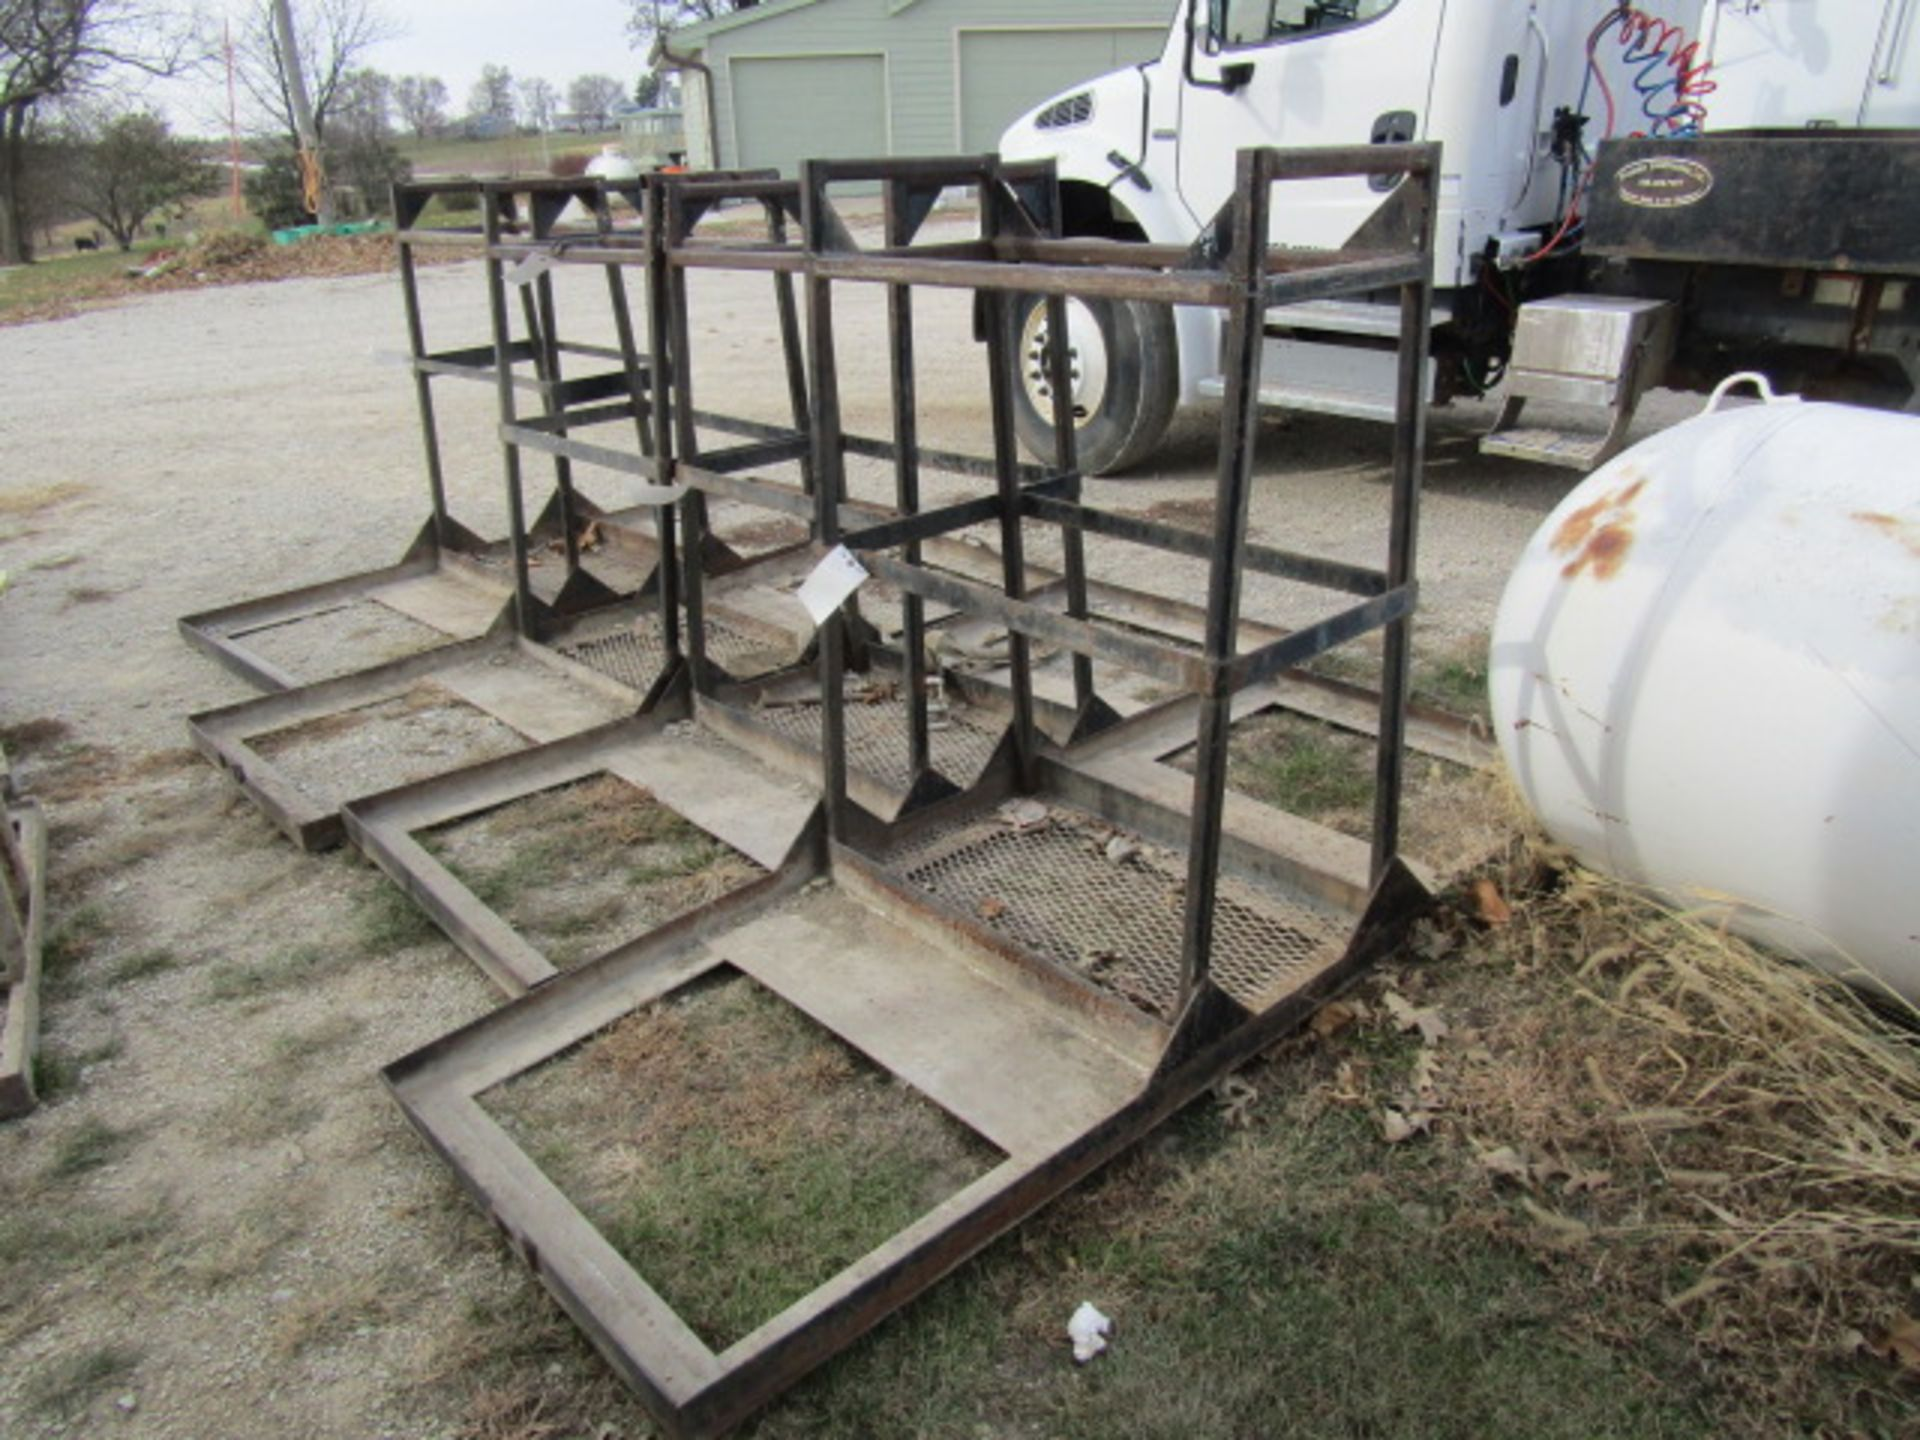 Lot 208 - 4' Concrete Forms Basket, Located in Winterset, IA